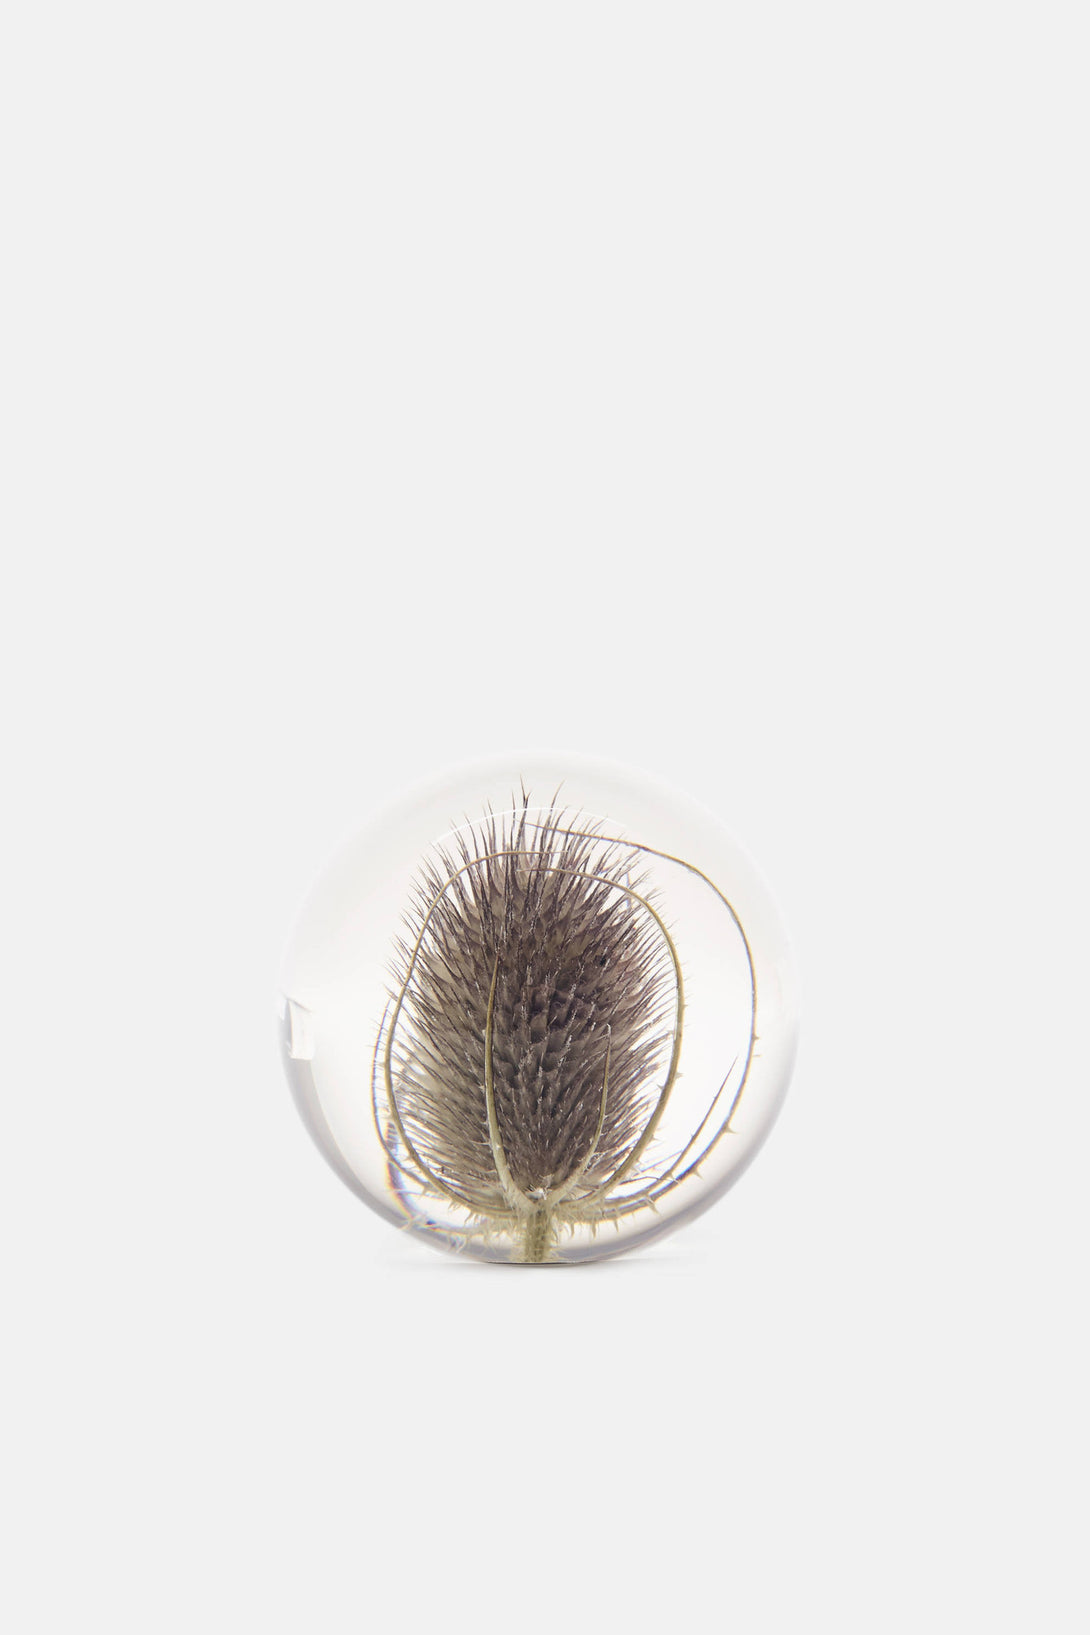 Paperweight - Teasel